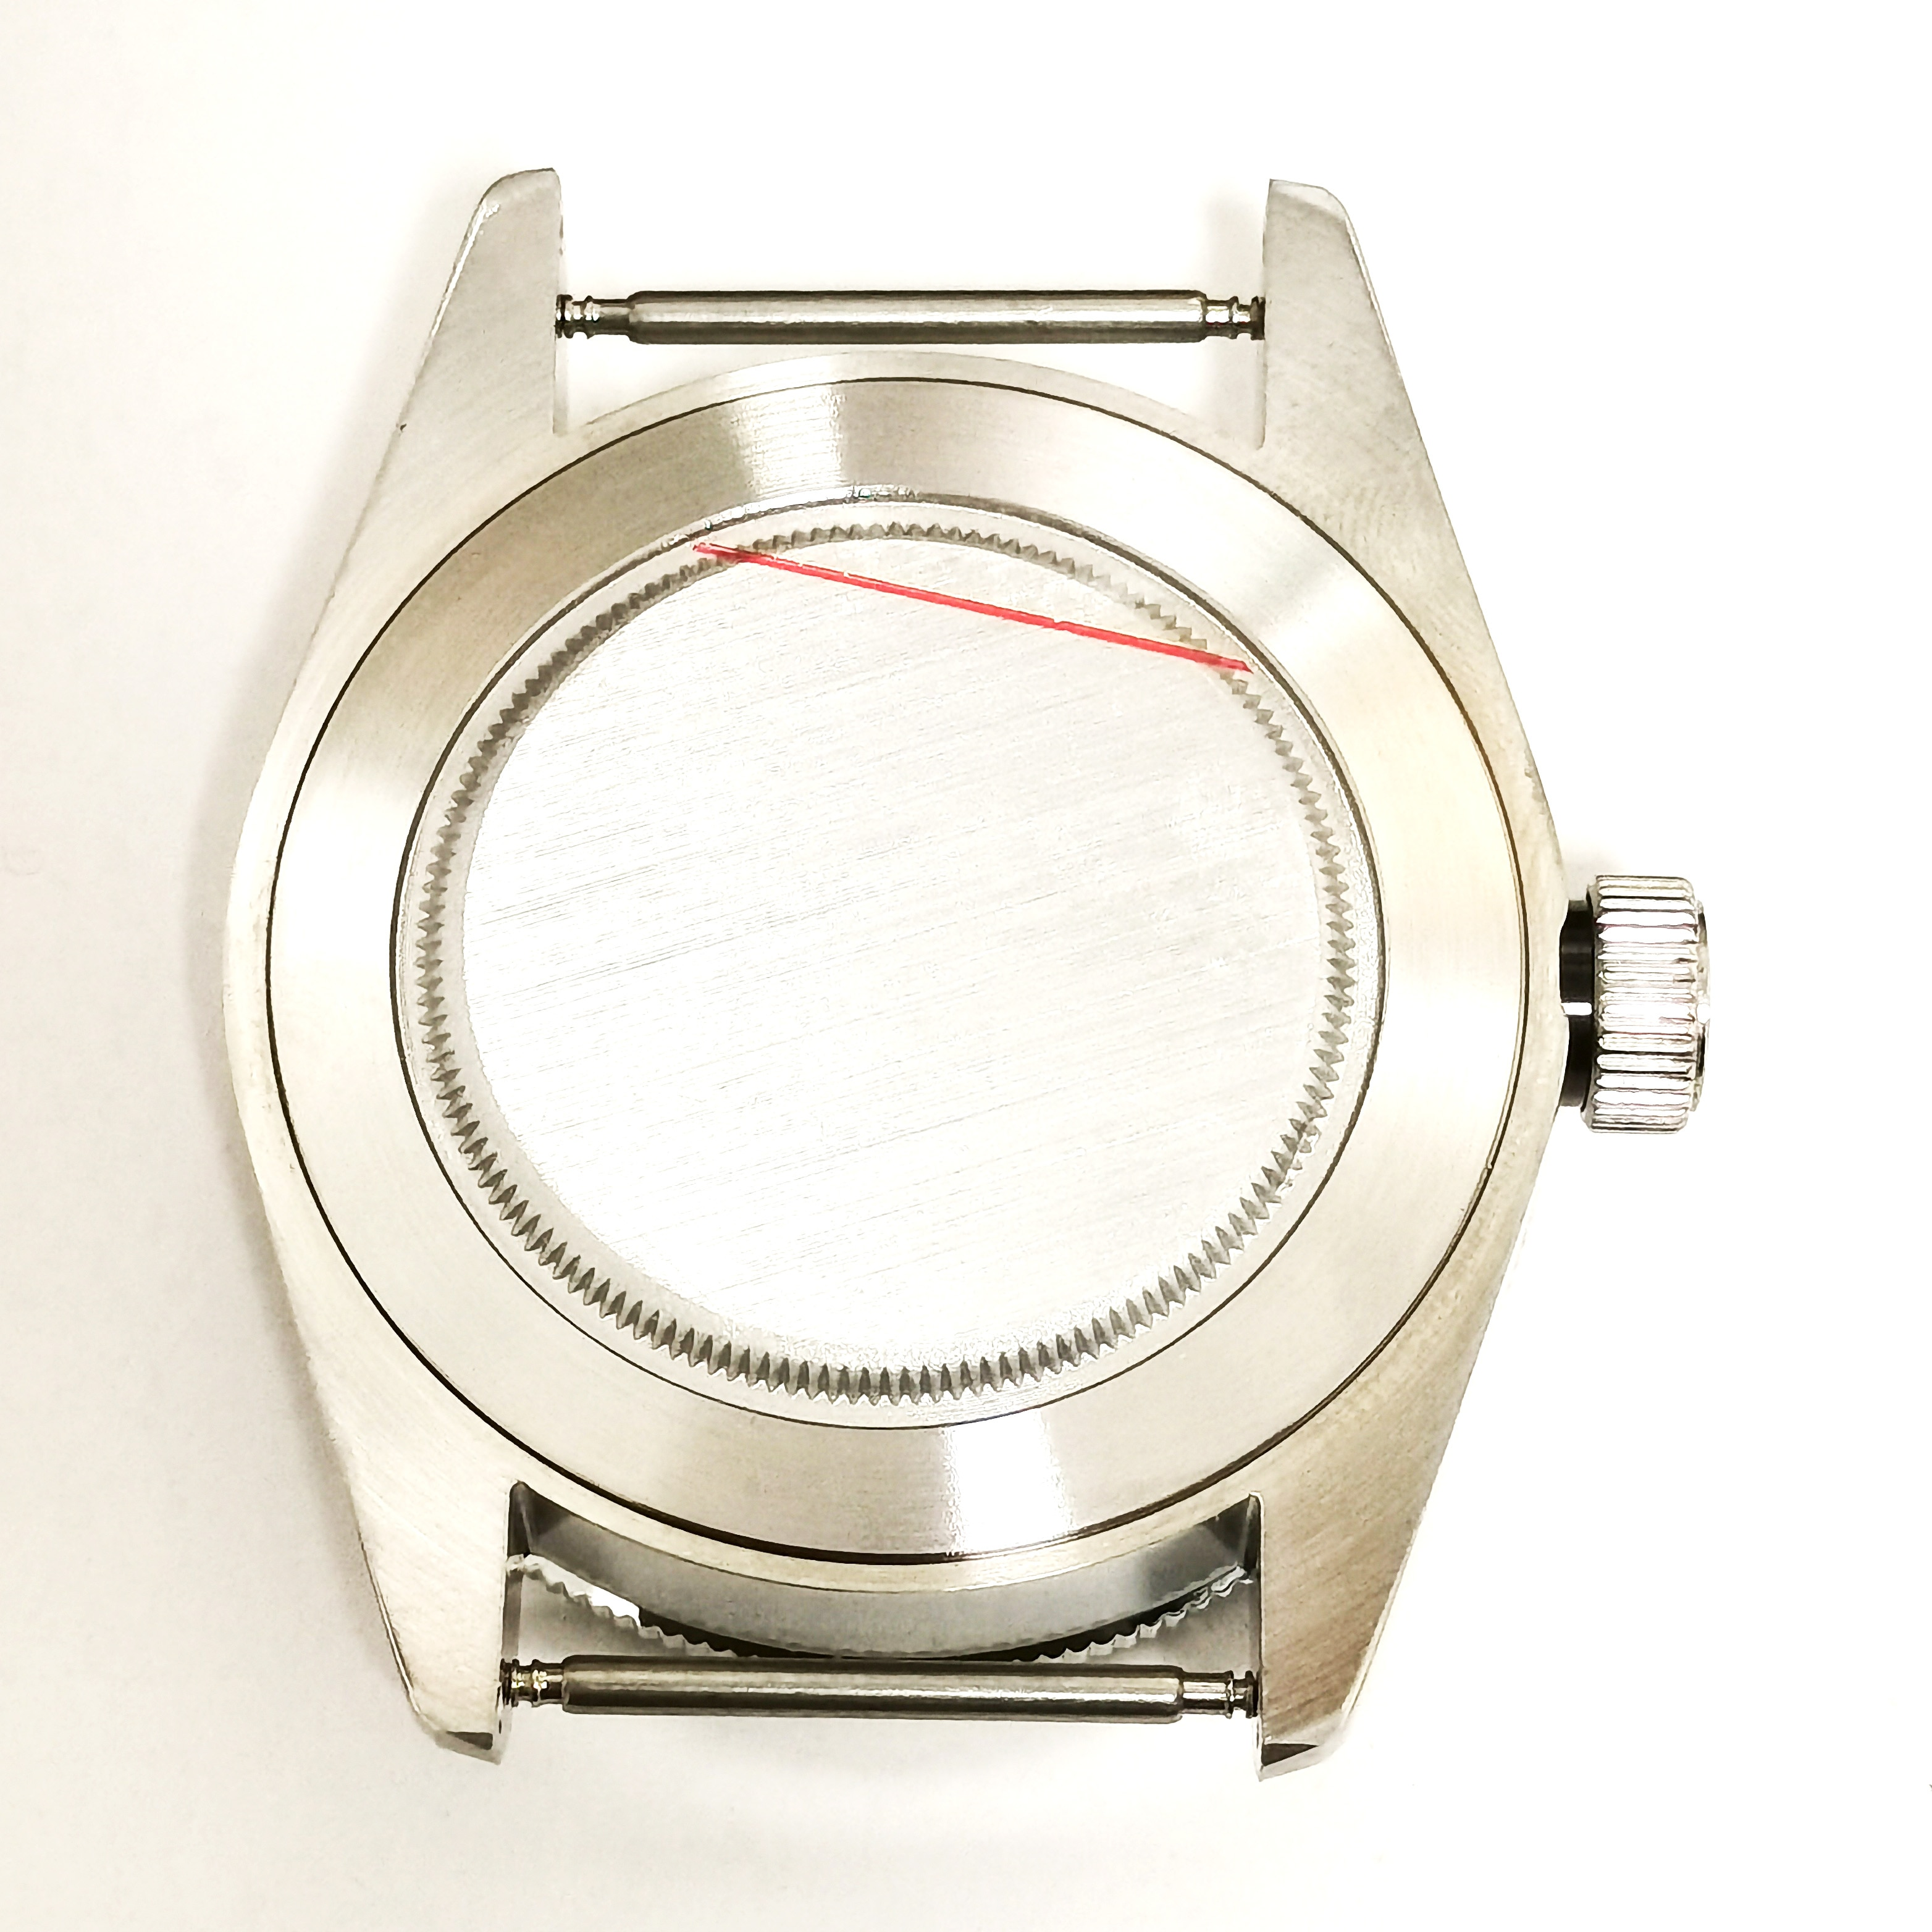 41MM Man's Watch Accessories 316 Stainless Steel Cases Dial And Hands Fit Eta2836 ST2130 Miyota8215 Automatic Movement enlarge